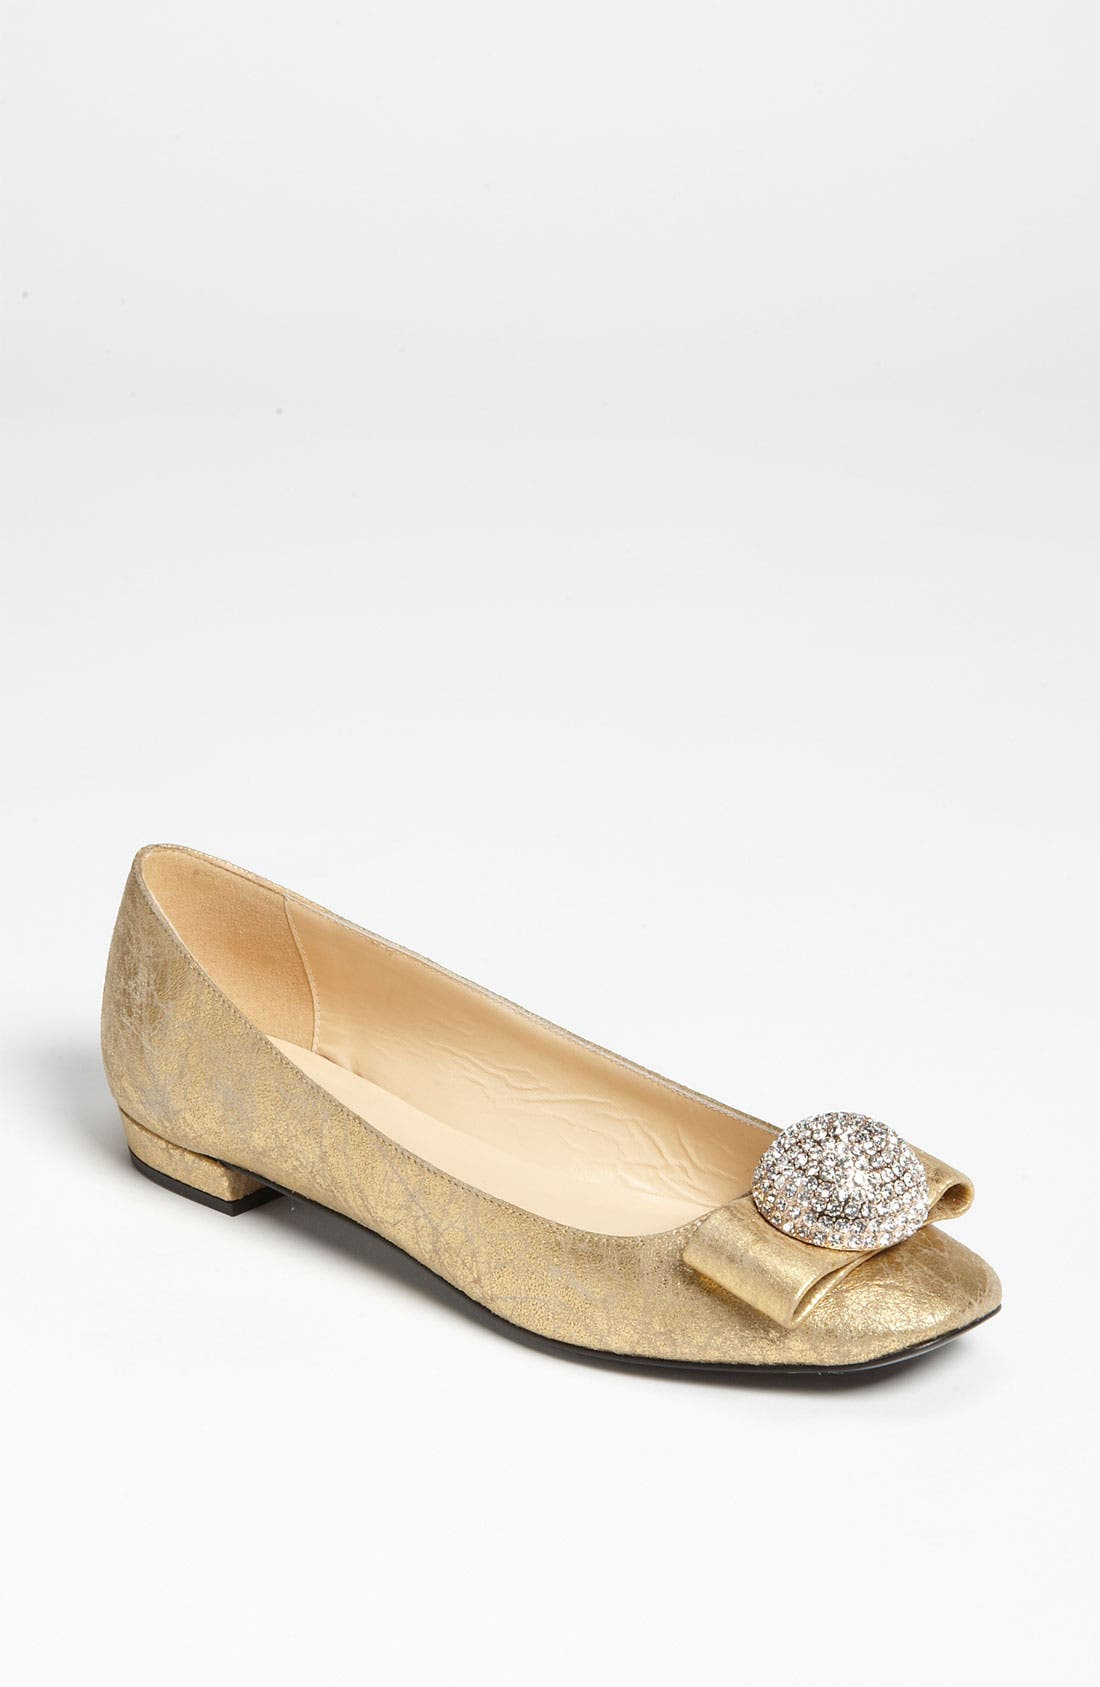 Alternate Image 1 Selected - kate spade new york 'nadira' flat